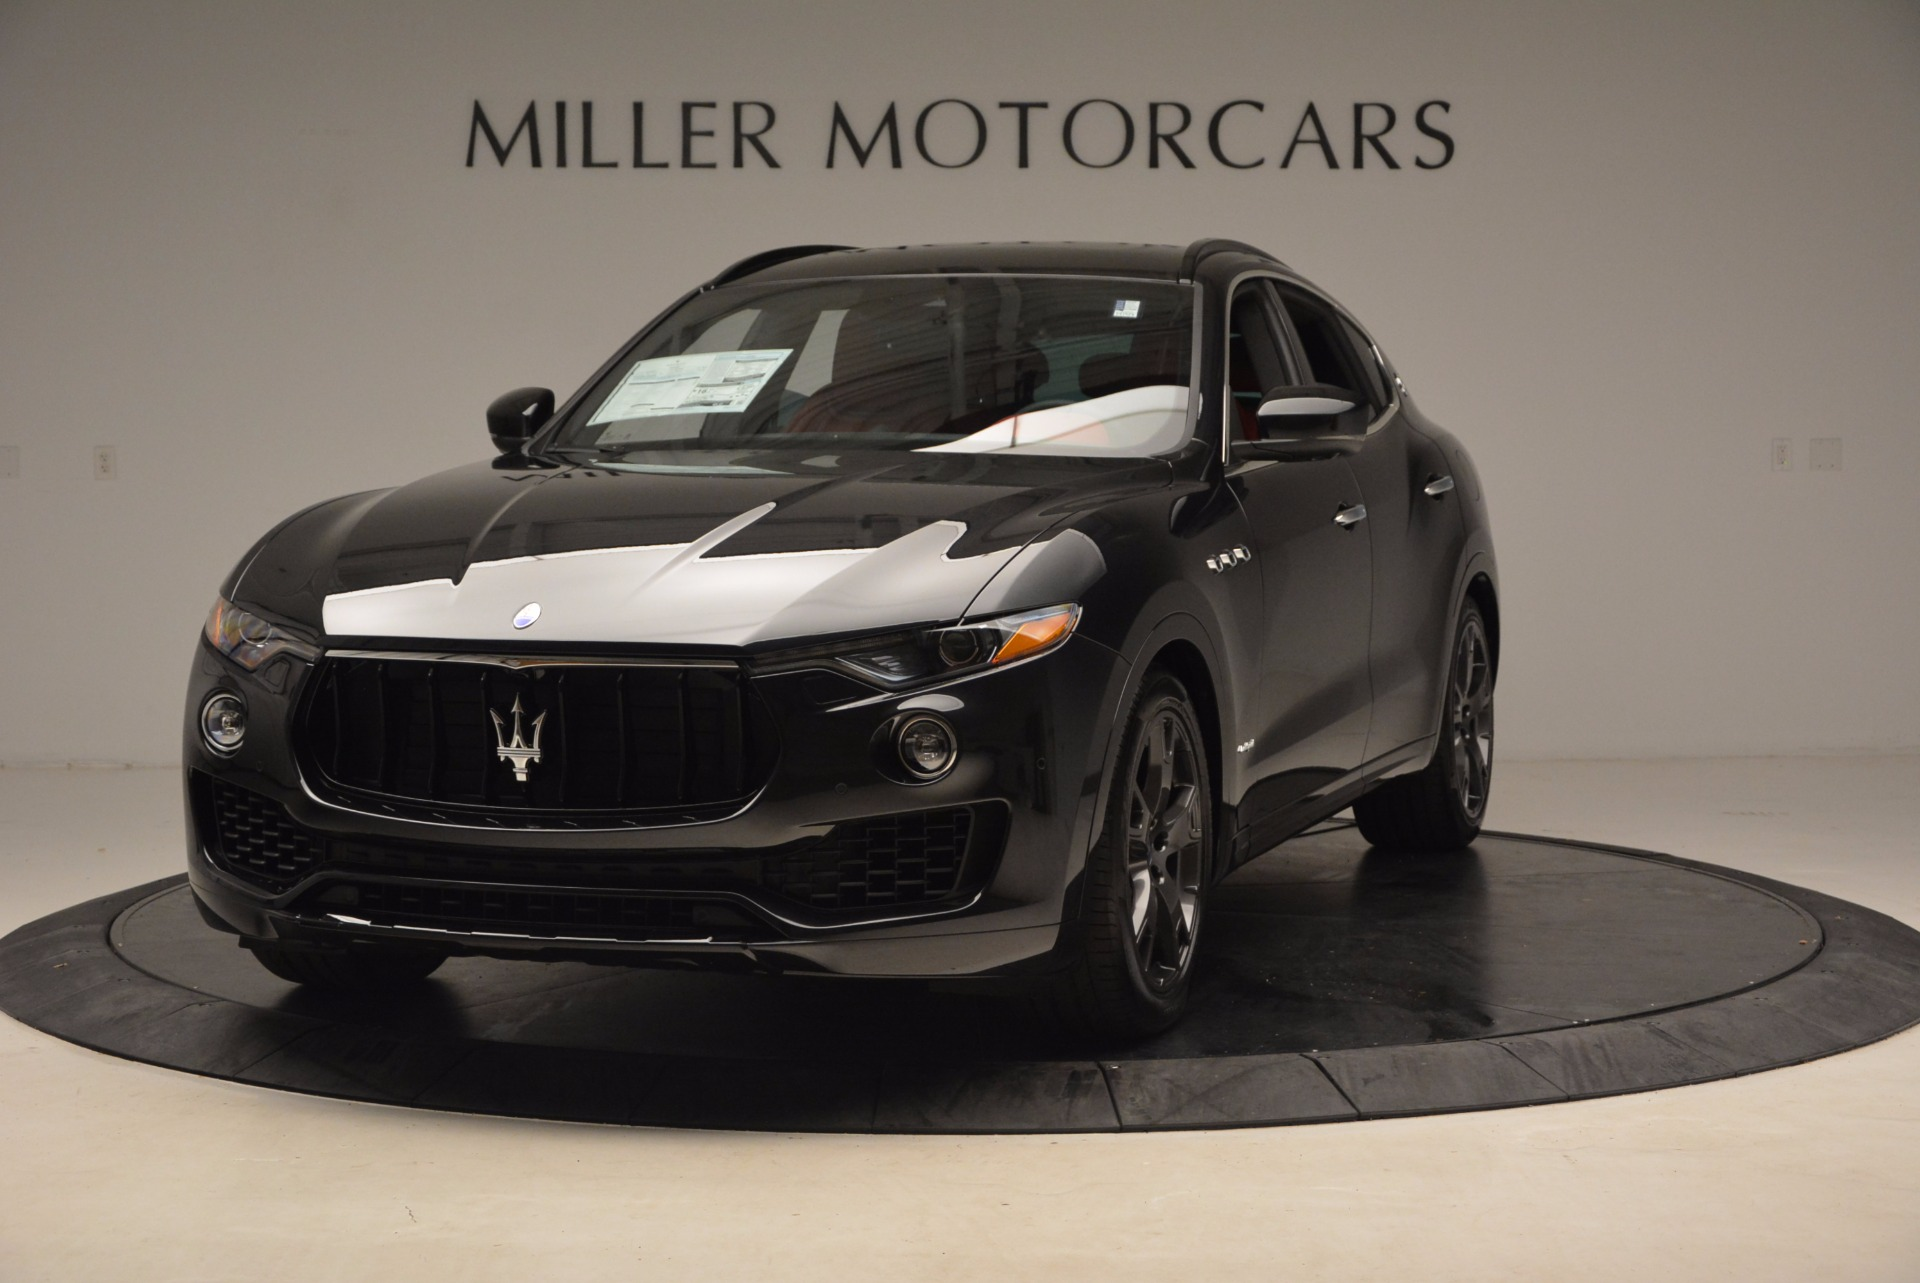 New 2018 Maserati Levante S GranSport for sale Sold at Rolls-Royce Motor Cars Greenwich in Greenwich CT 06830 1